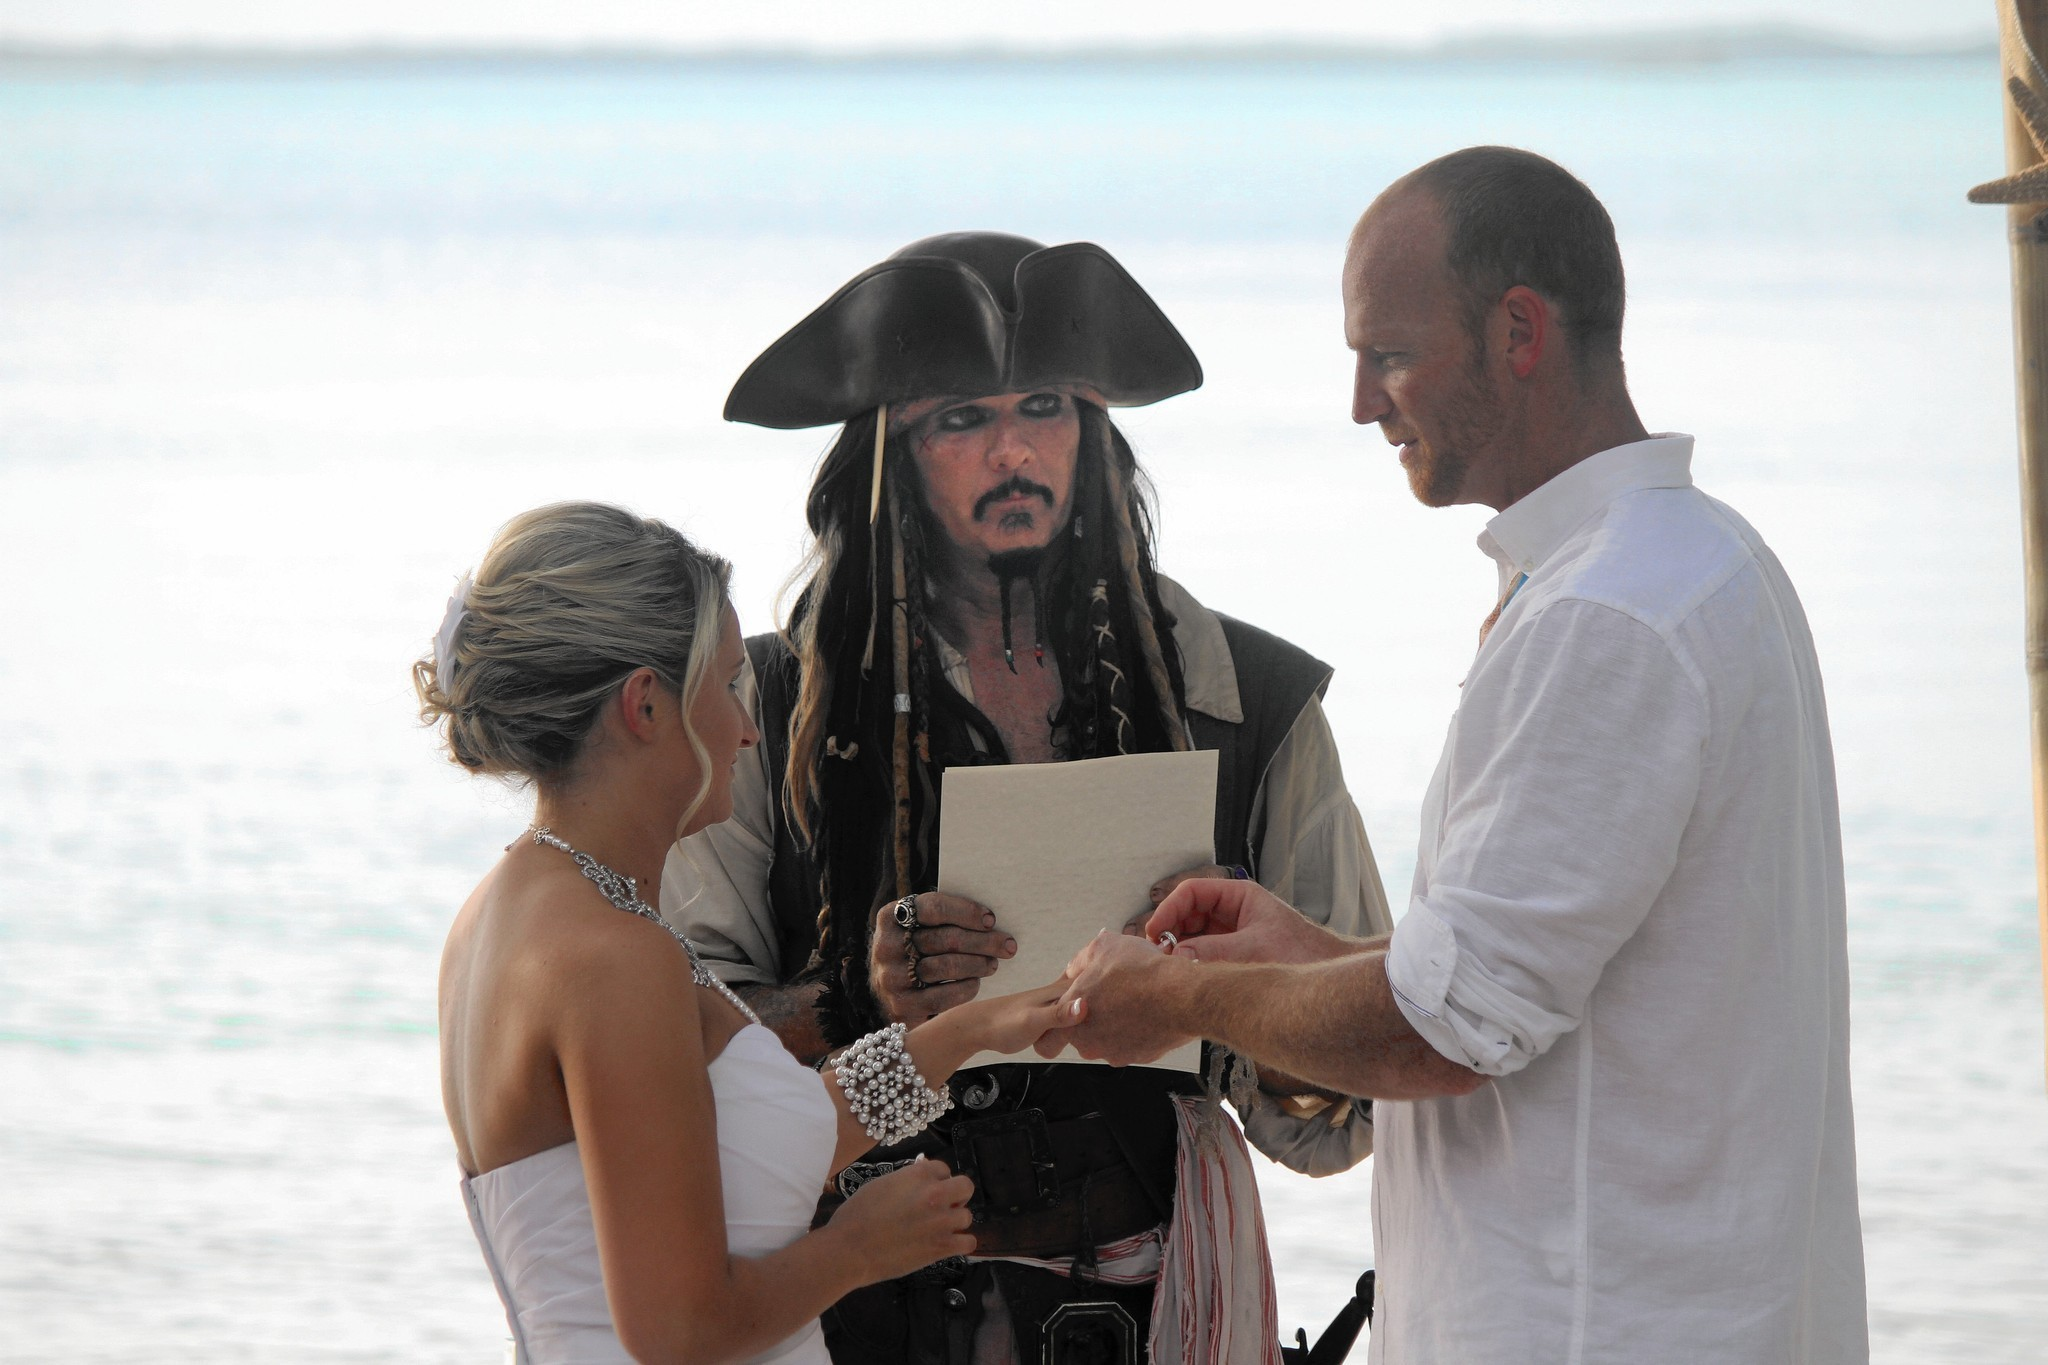 Florida Man Adopts Jack Sparrow Persona To Officiate Weddings